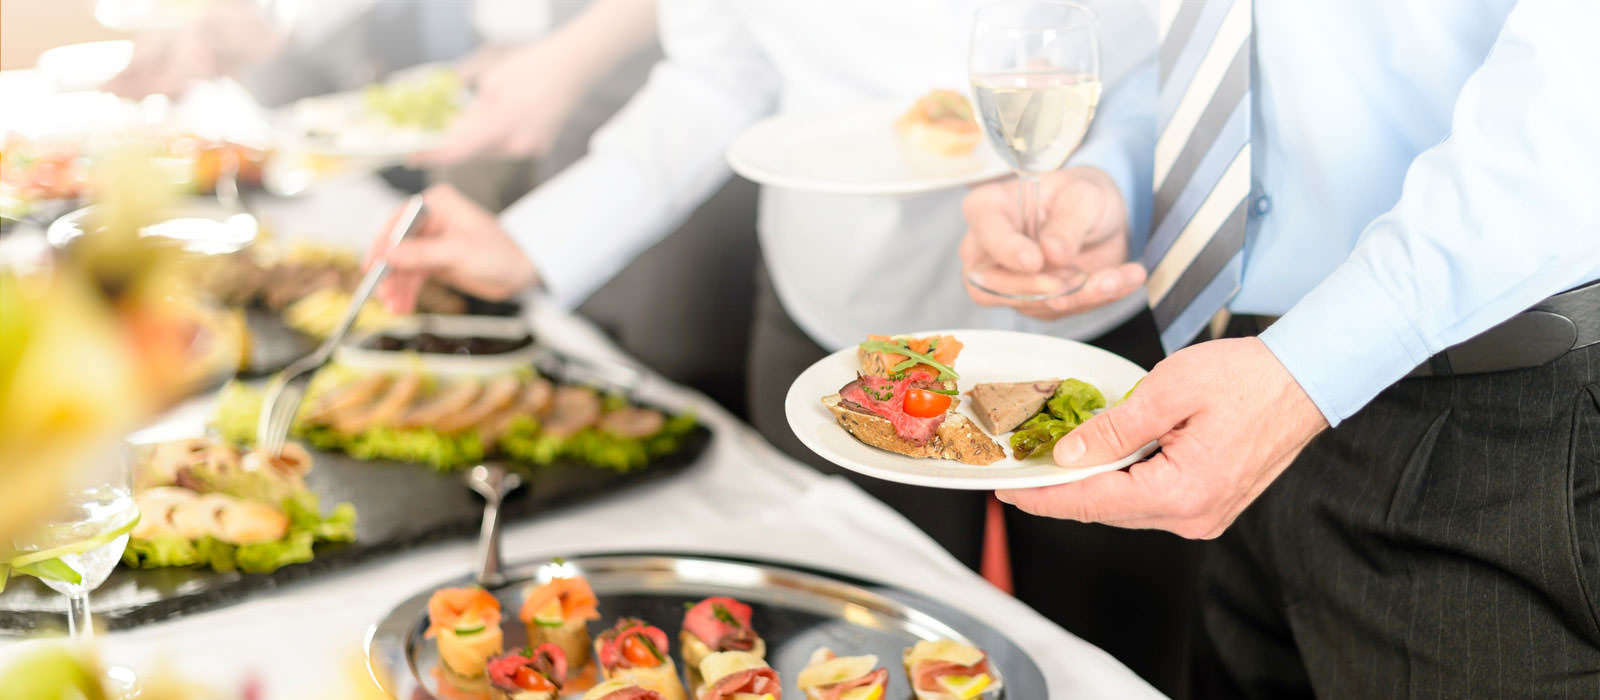 corporate-event-catering-new-hampshire.jpg